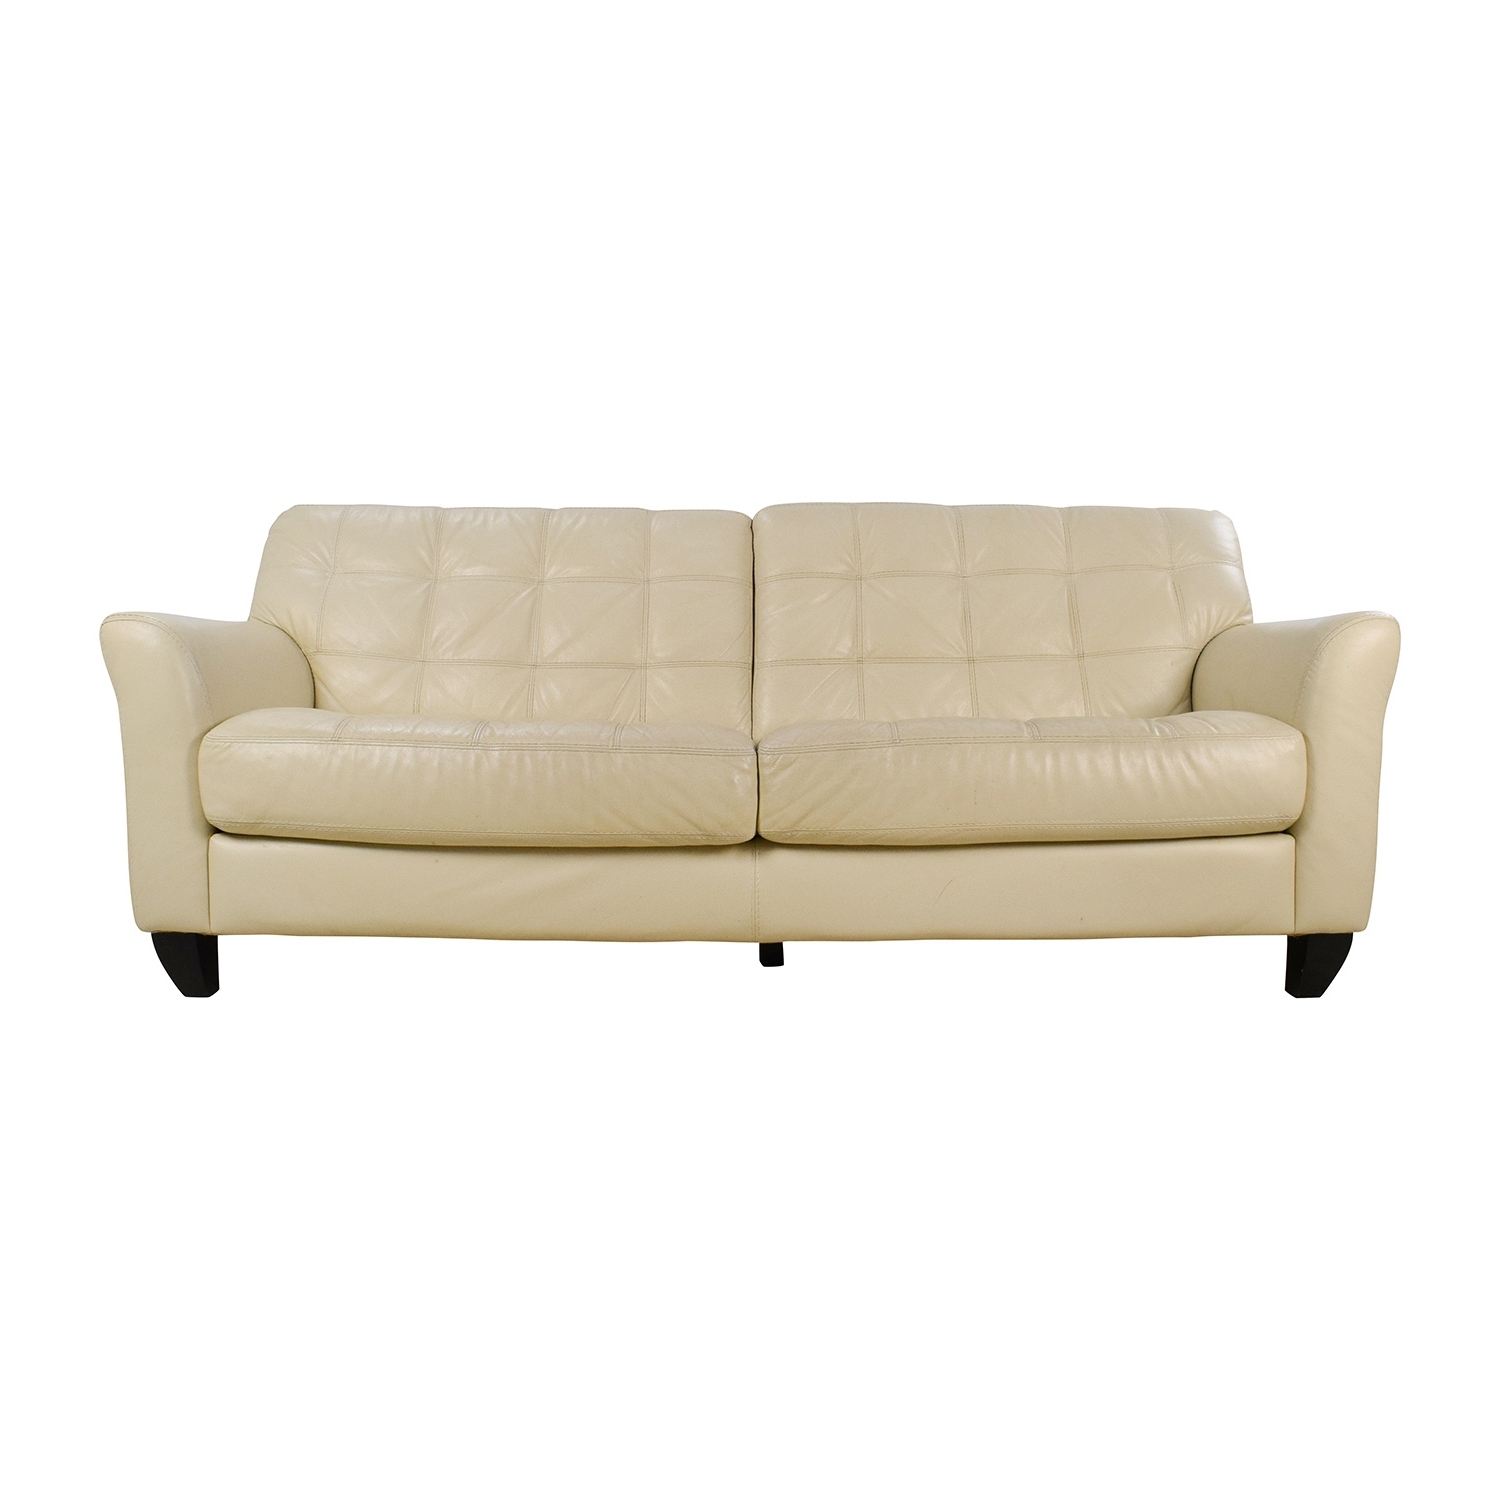 [%68% Off – Macy's Macy's Milan White Leather Couch / Sofas With Well Known Off White Leather Sofas|Off White Leather Sofas Pertaining To Most Current 68% Off – Macy's Macy's Milan White Leather Couch / Sofas|Most Current Off White Leather Sofas In 68% Off – Macy's Macy's Milan White Leather Couch / Sofas|Well Liked 68% Off – Macy's Macy's Milan White Leather Couch / Sofas Throughout Off White Leather Sofas%] (View 12 of 15)